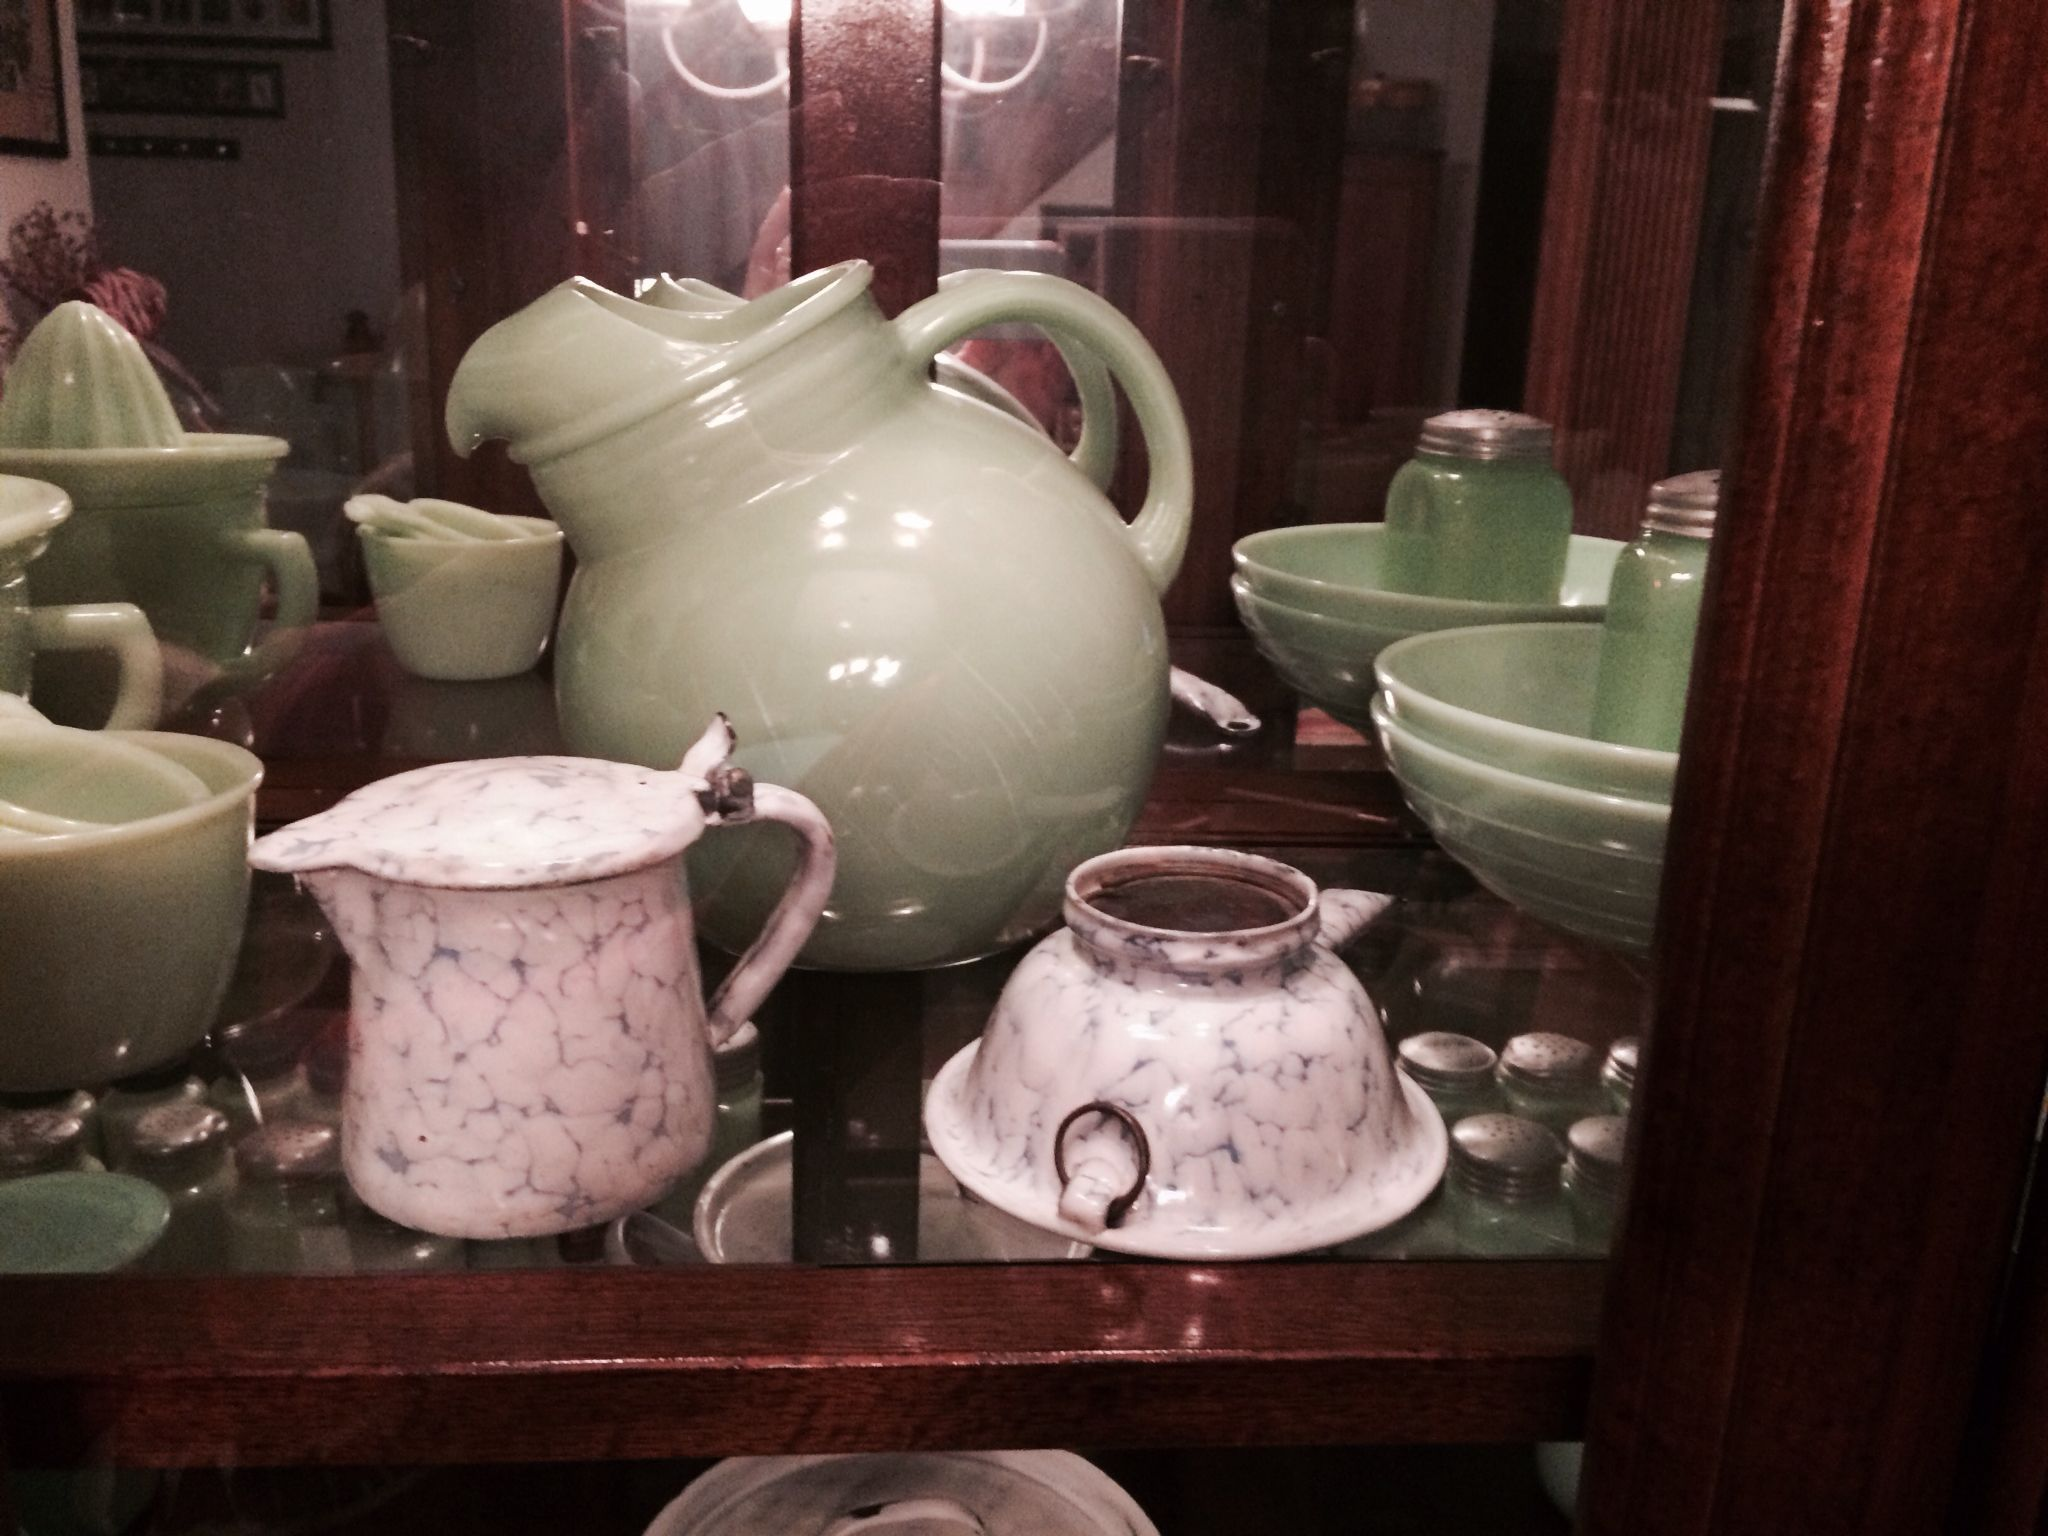 In their new home with the Jadeite pieces.